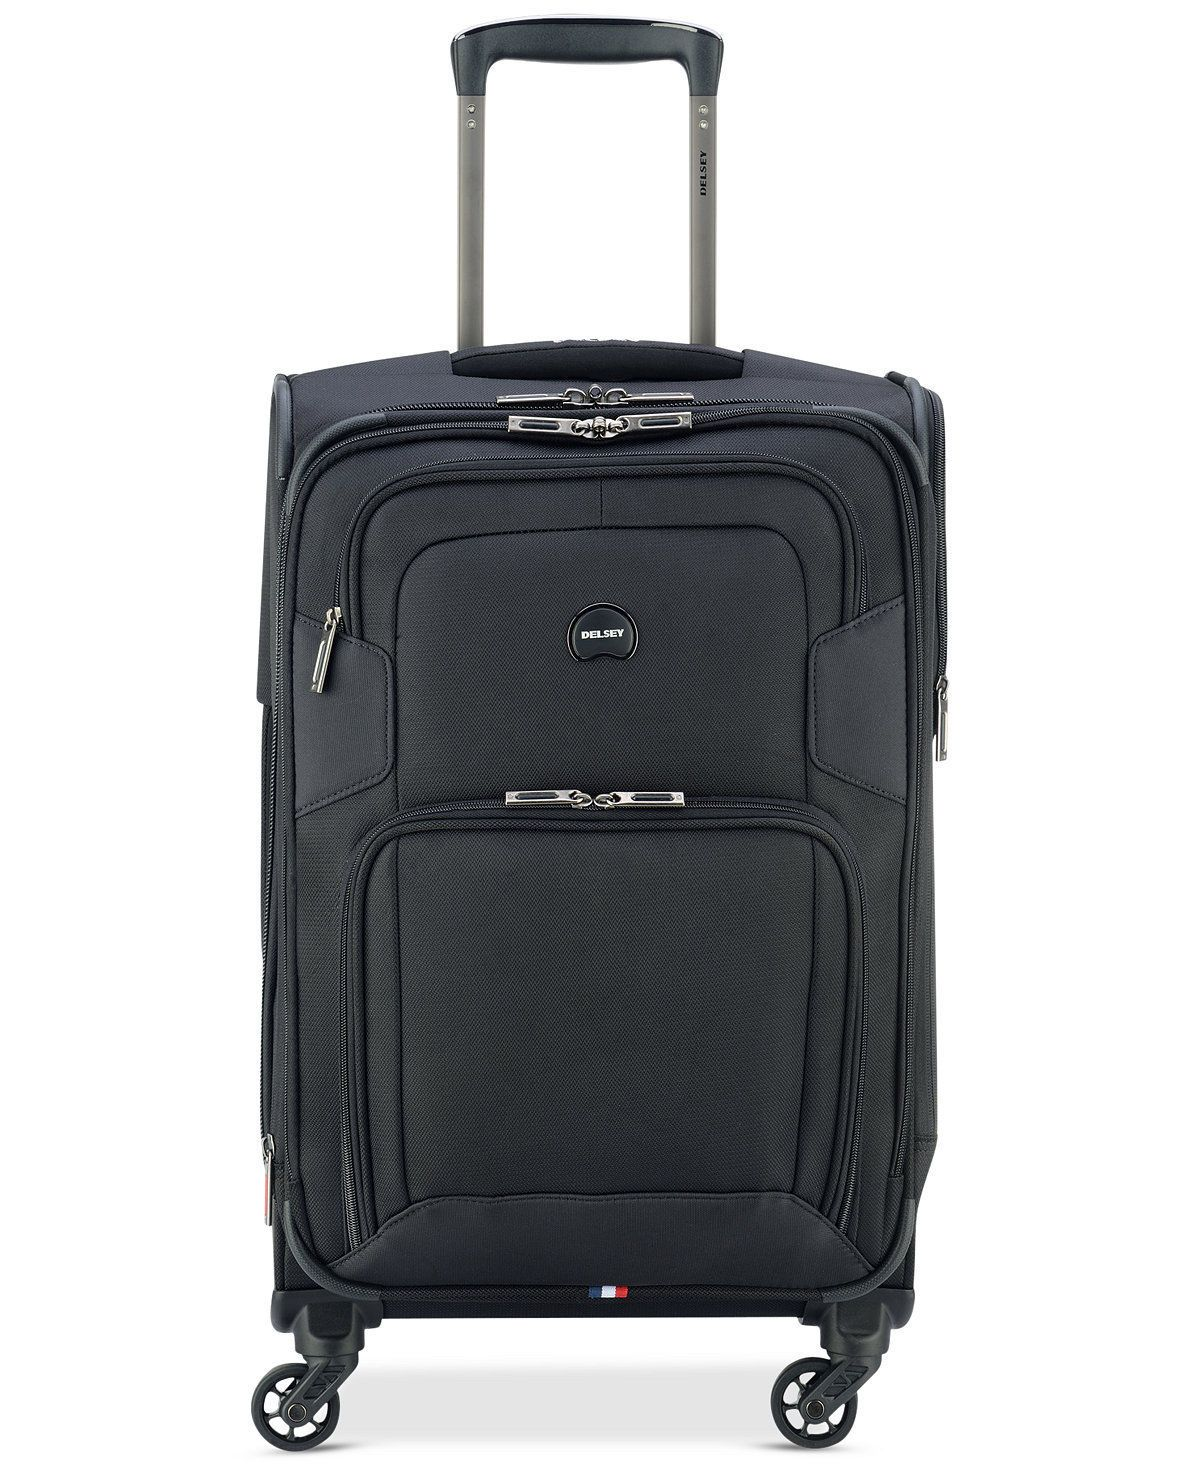 "$280 NEW Delsey OPTI-MAX 21"" Expandable Spinner Carry On Suitcase Luggage Black"